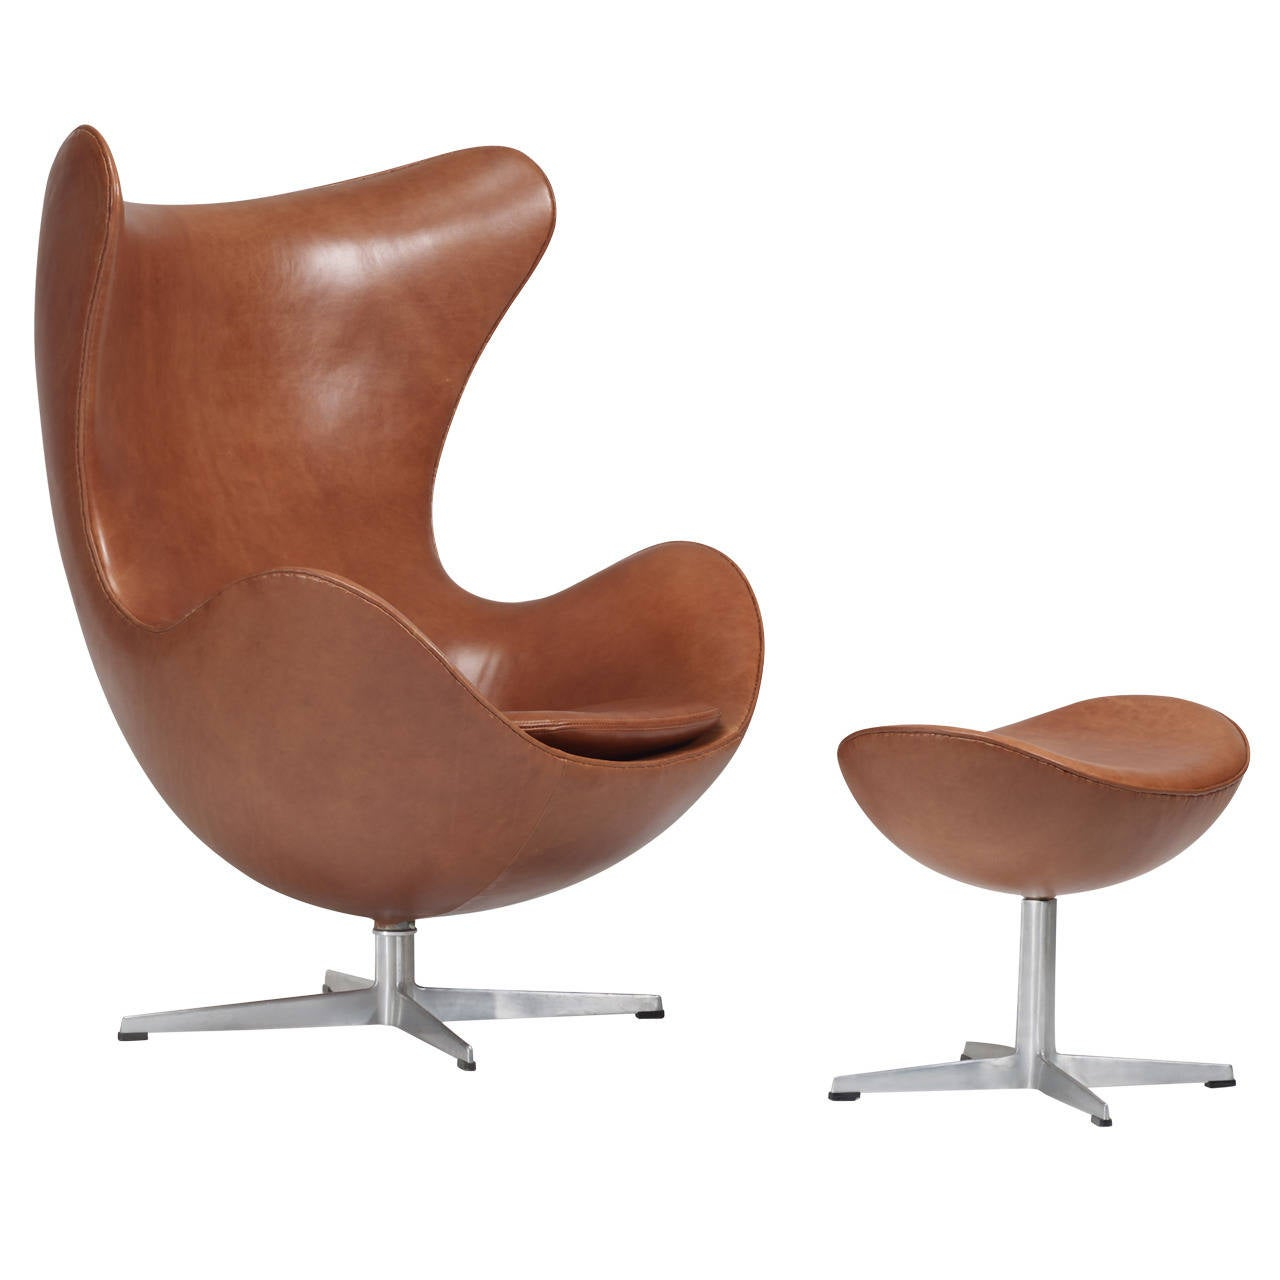 Design Egg Chair early arne jacobsen egg chair and ottoman for fritz hansen pair available 1